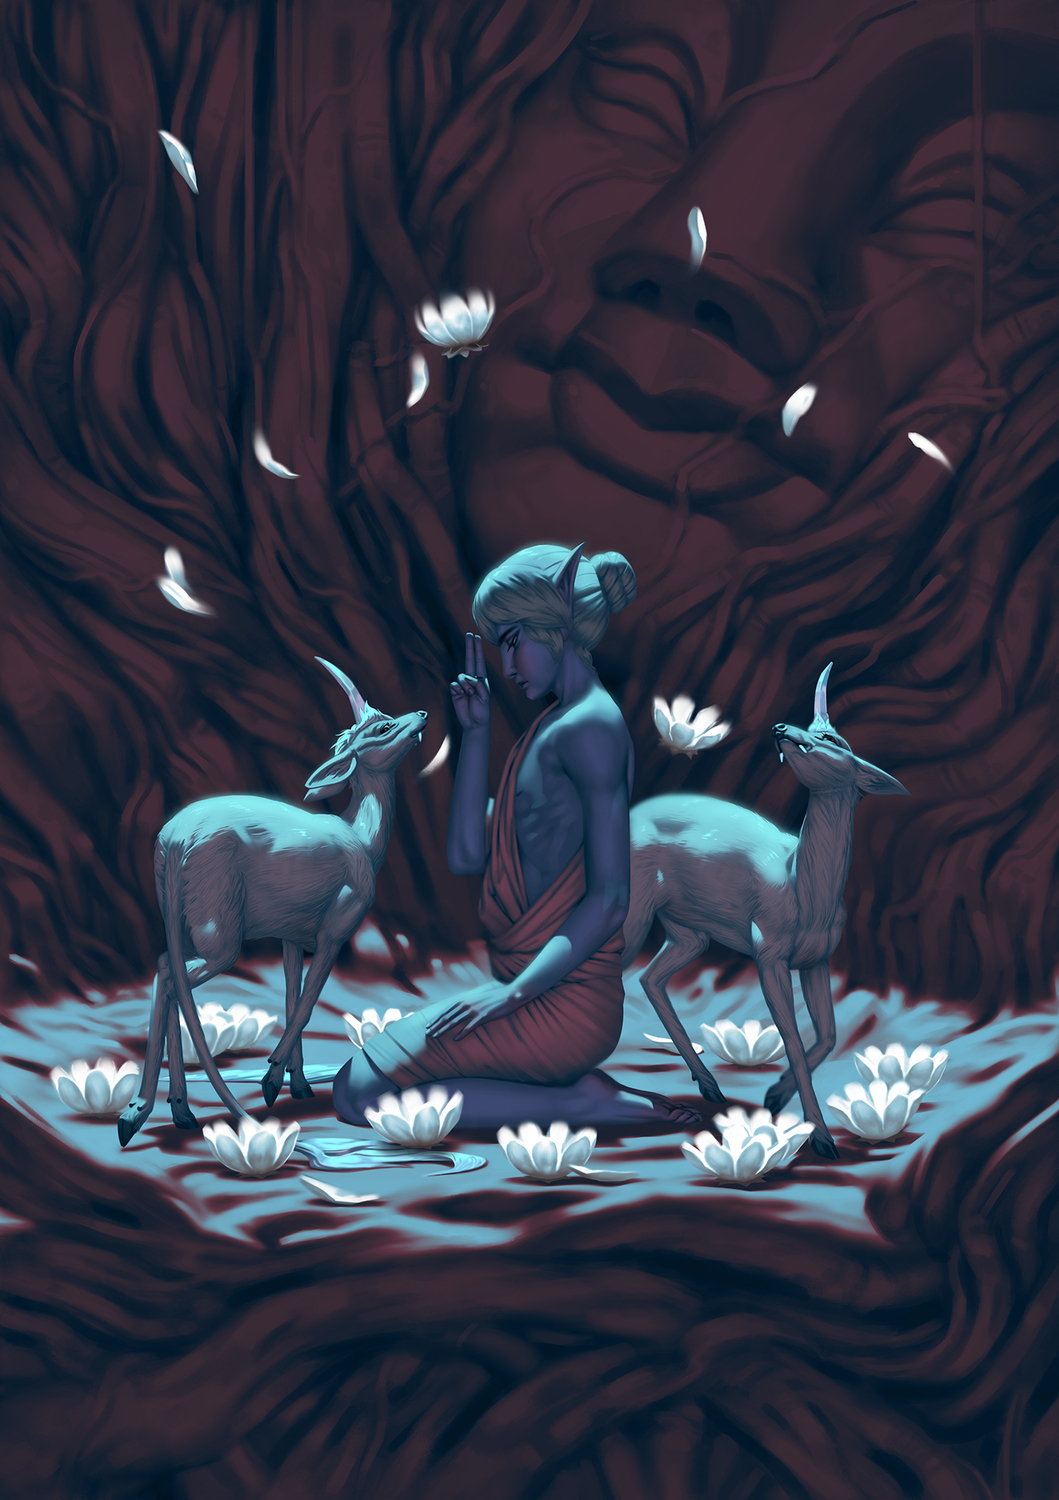 Virtues Series: Purity Artwork by Candice Broersma